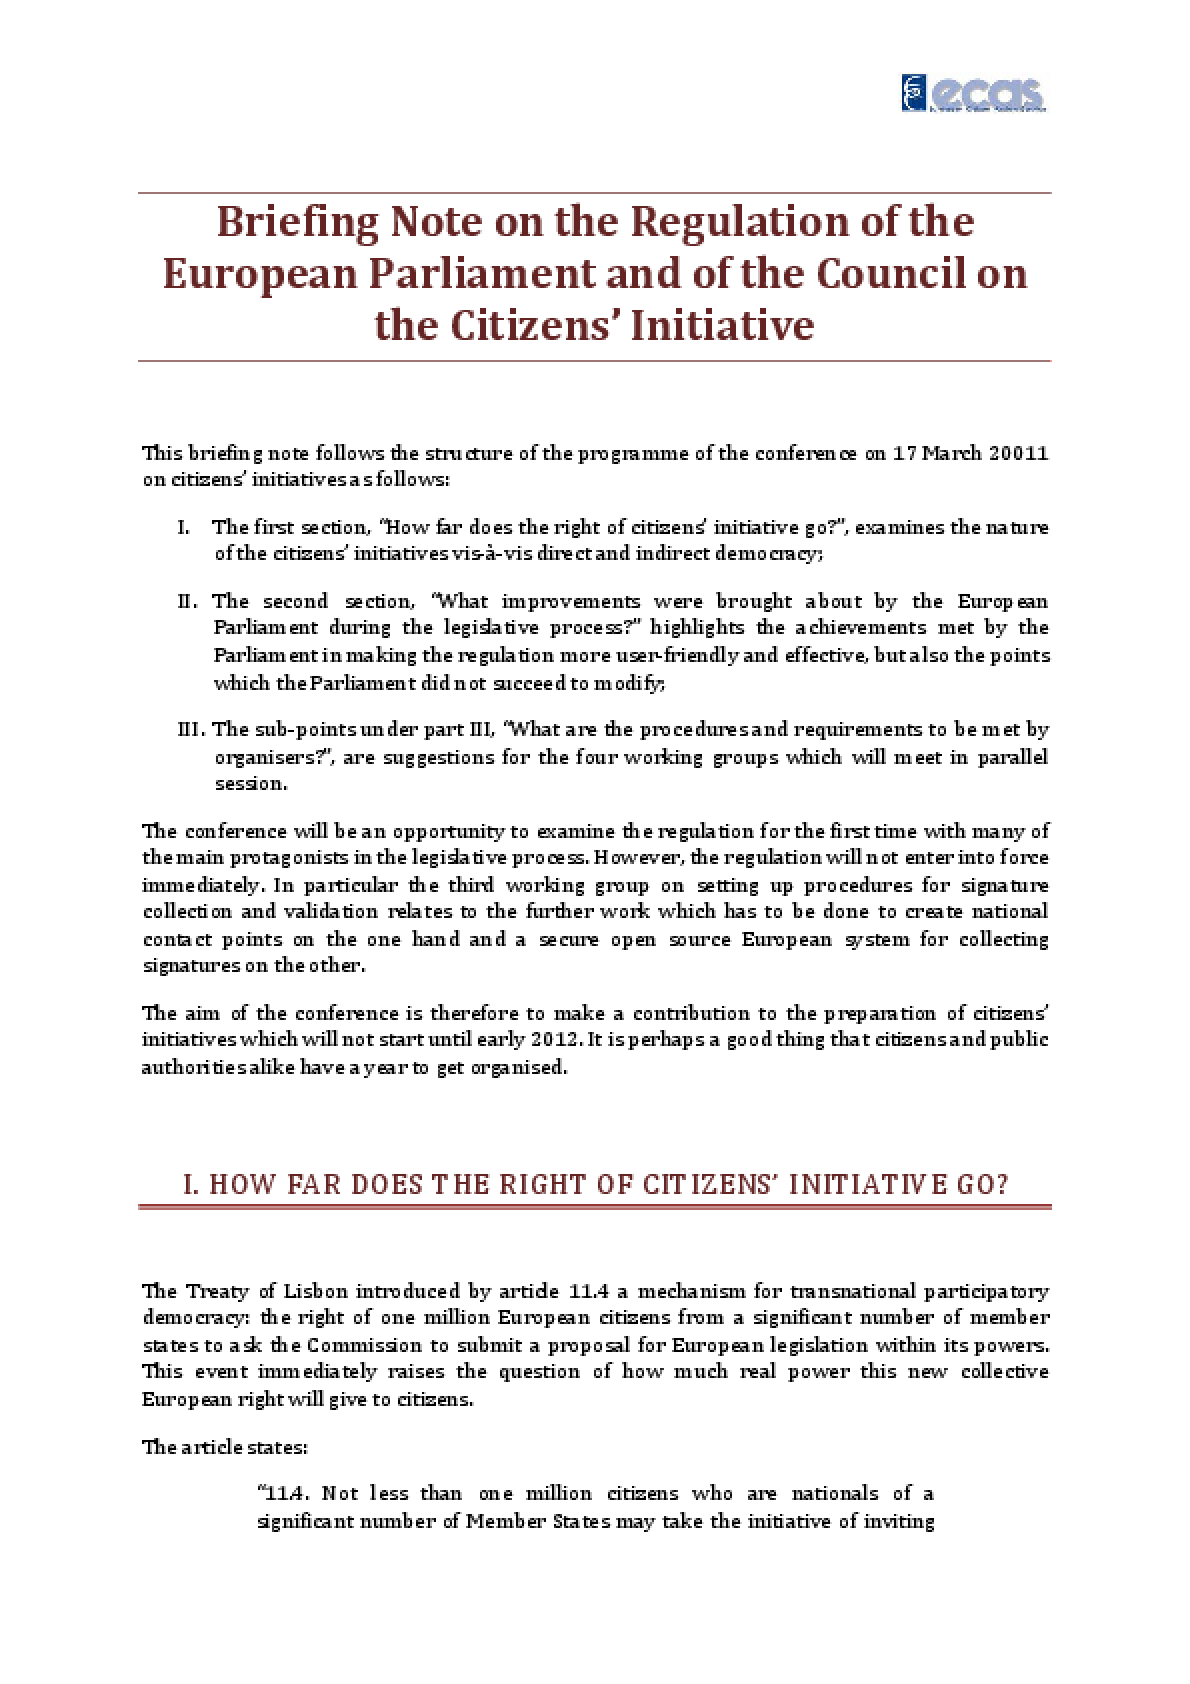 Briefing Note on the Regulation of the European Parliament and of the Council on the Citizens' Initiative